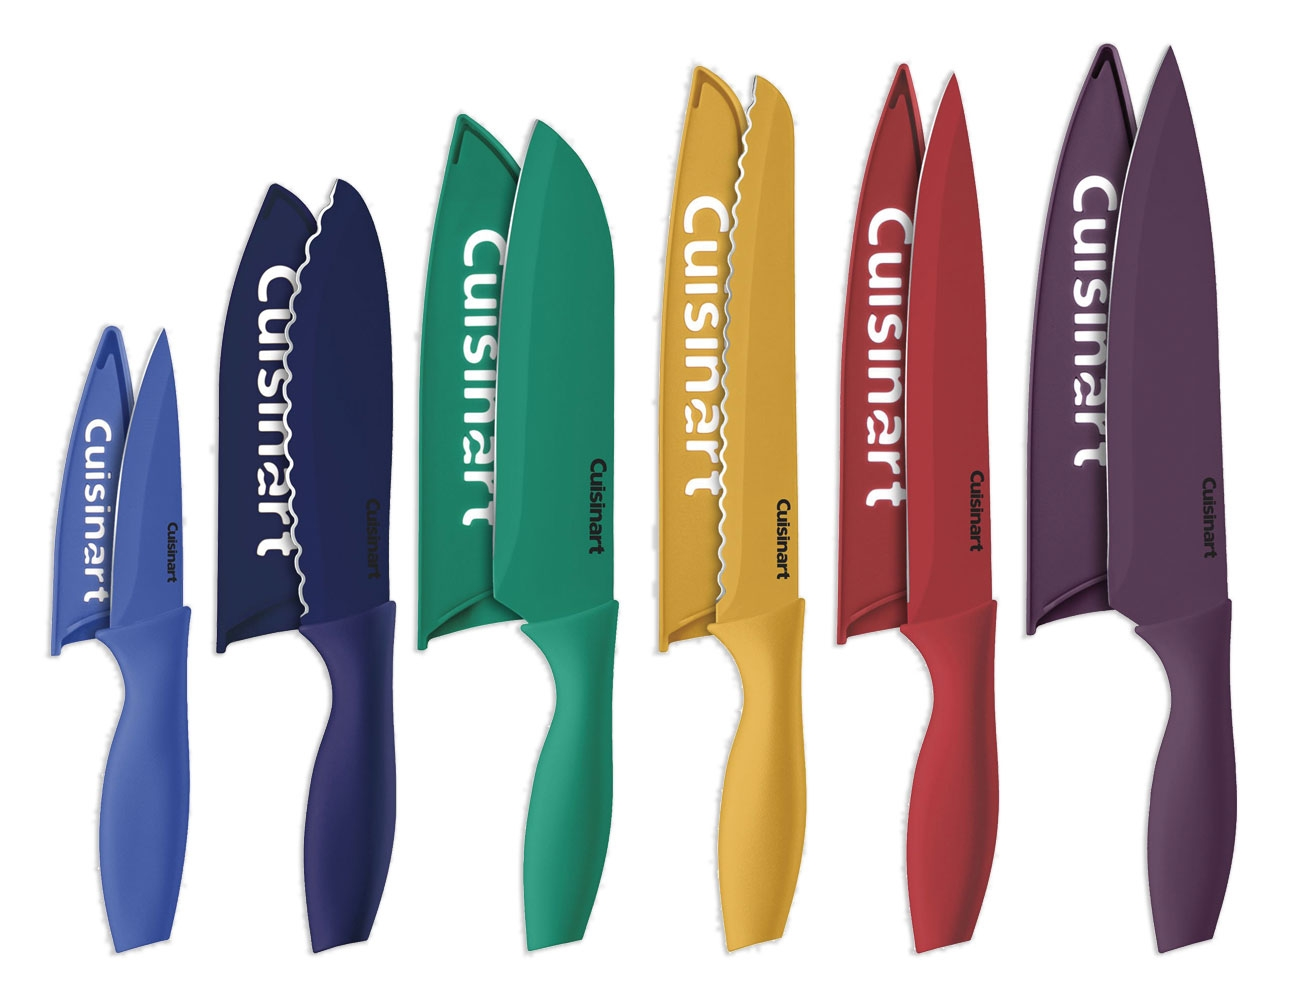 Cuisinart 12 Piece Multi-Coloured Knife Set